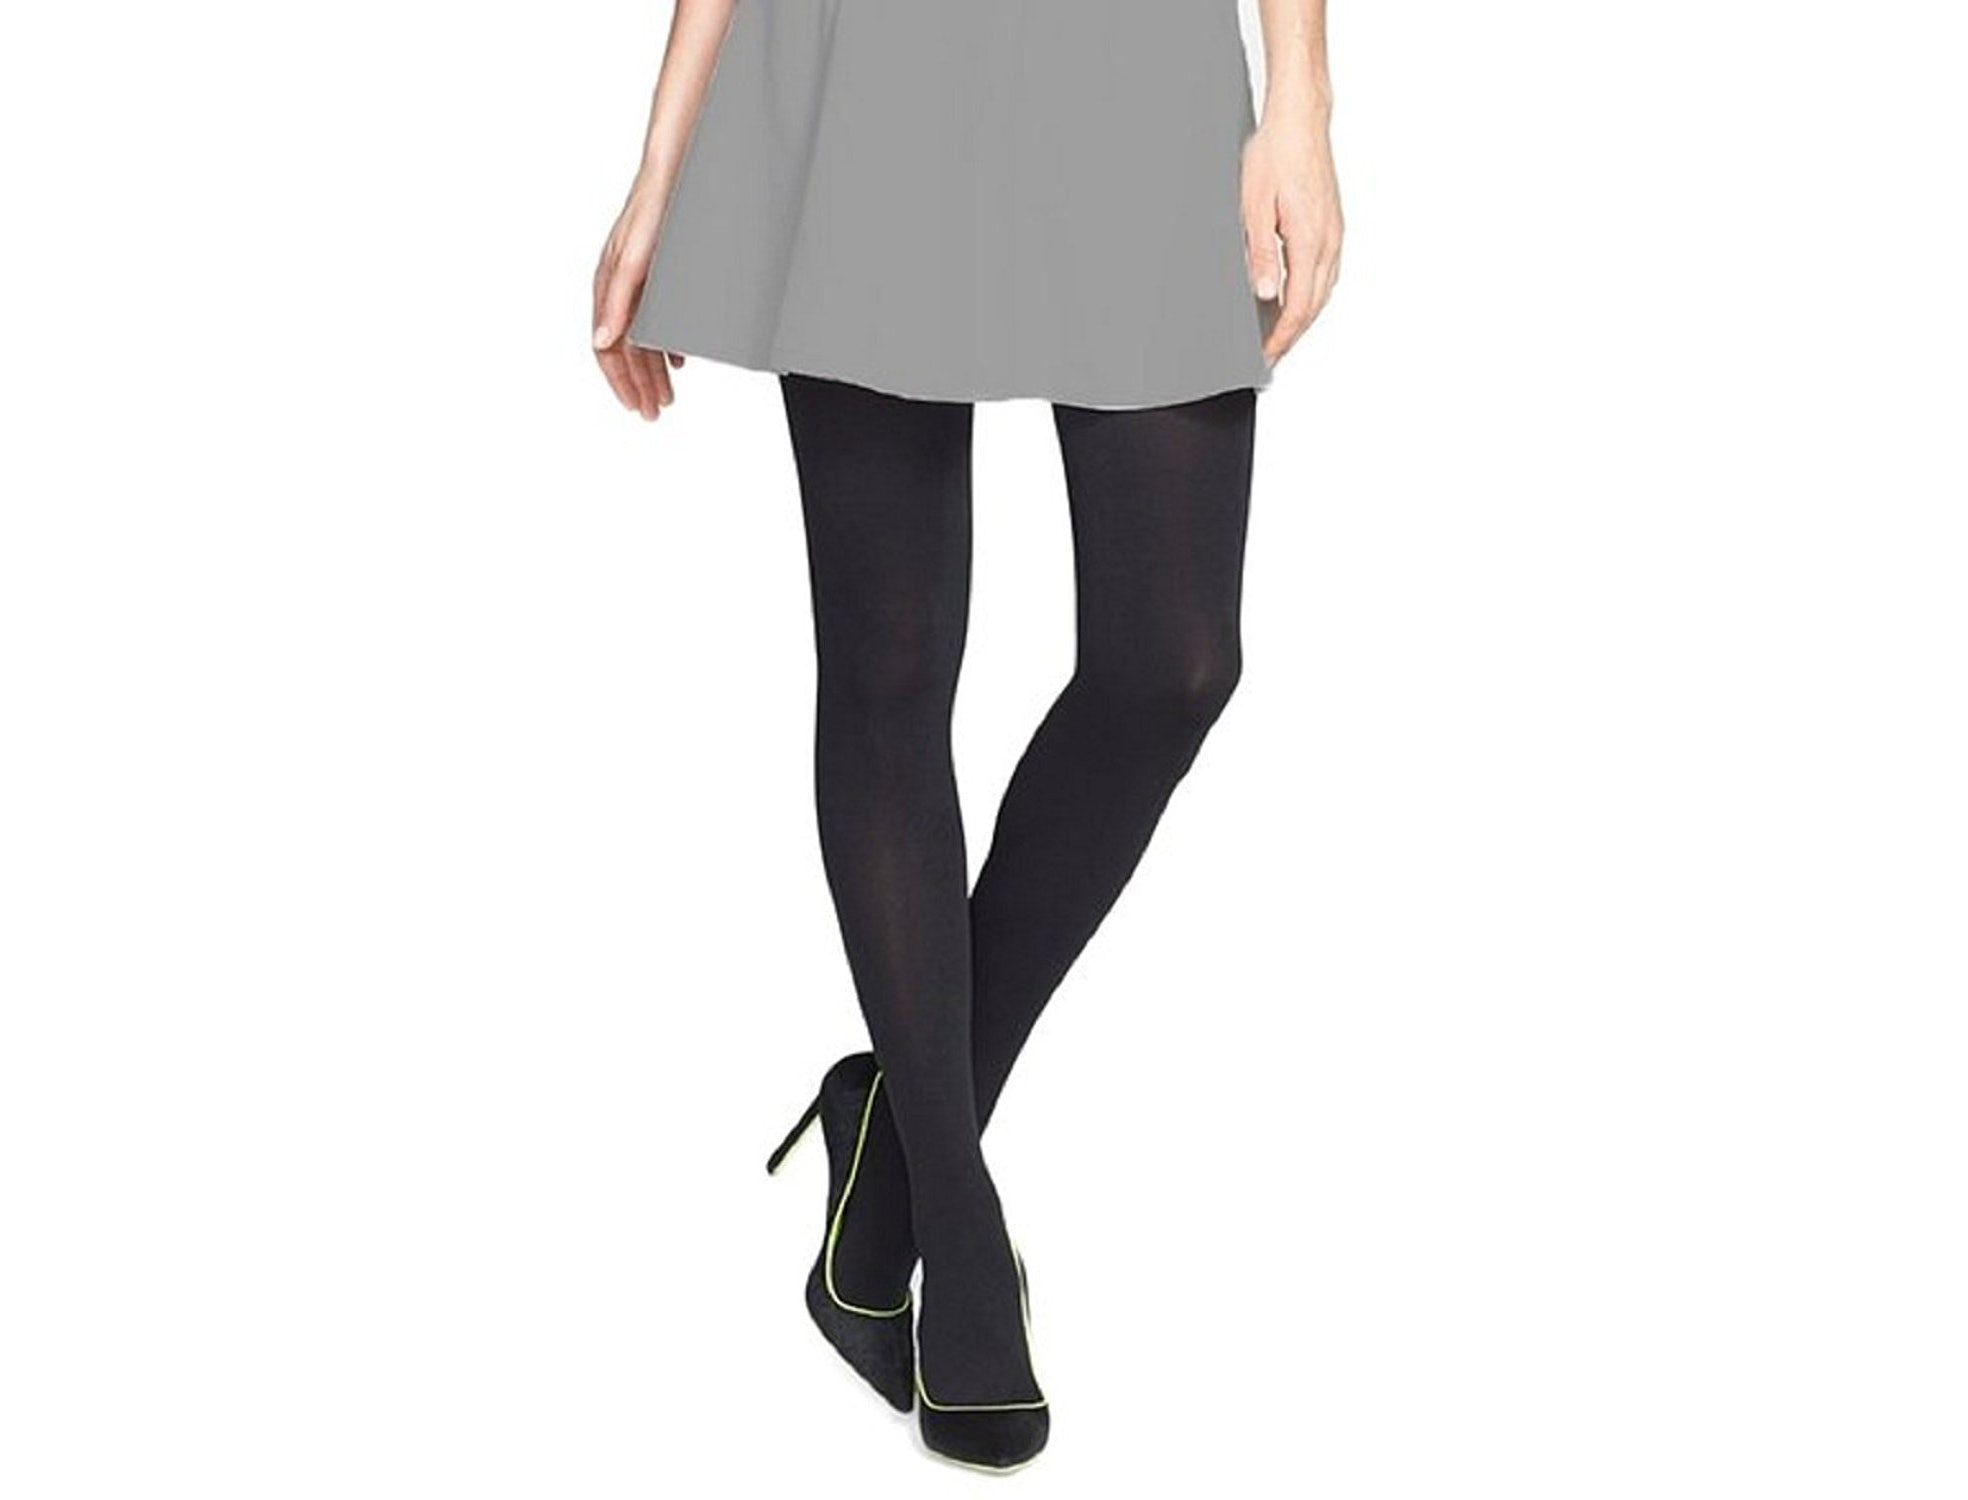 968dd71f4 The 5 Best Opaque Tights